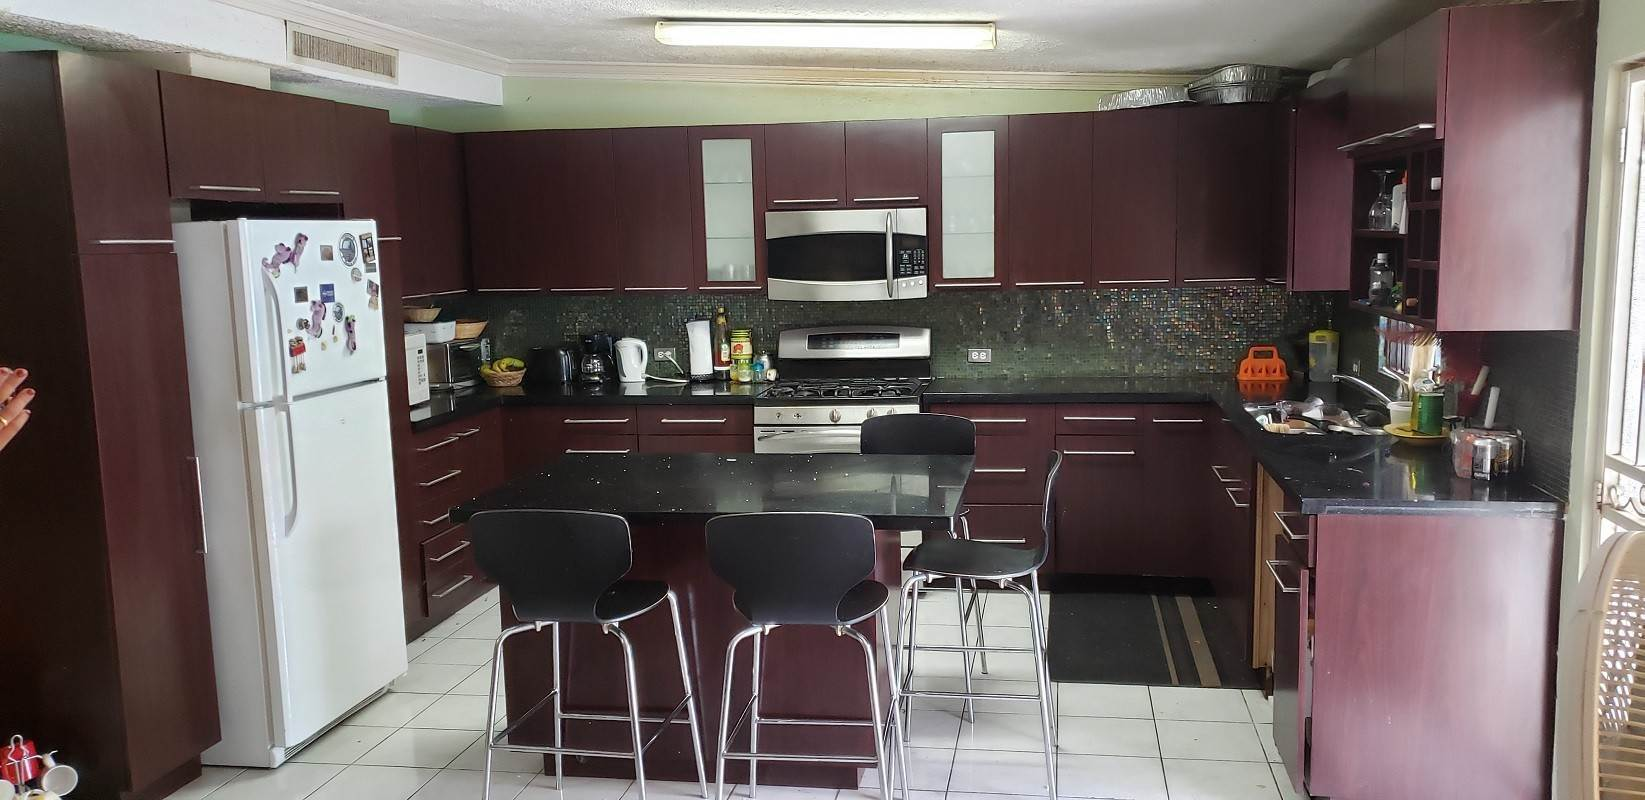 2. Single Family Homes for Rent at 3 Bed 2 Bath Residence #7 Vanga Court, Blair Estates - MLS 43817 Blair Estates, Eastern Road, Nassau And Paradise Island Bahamas